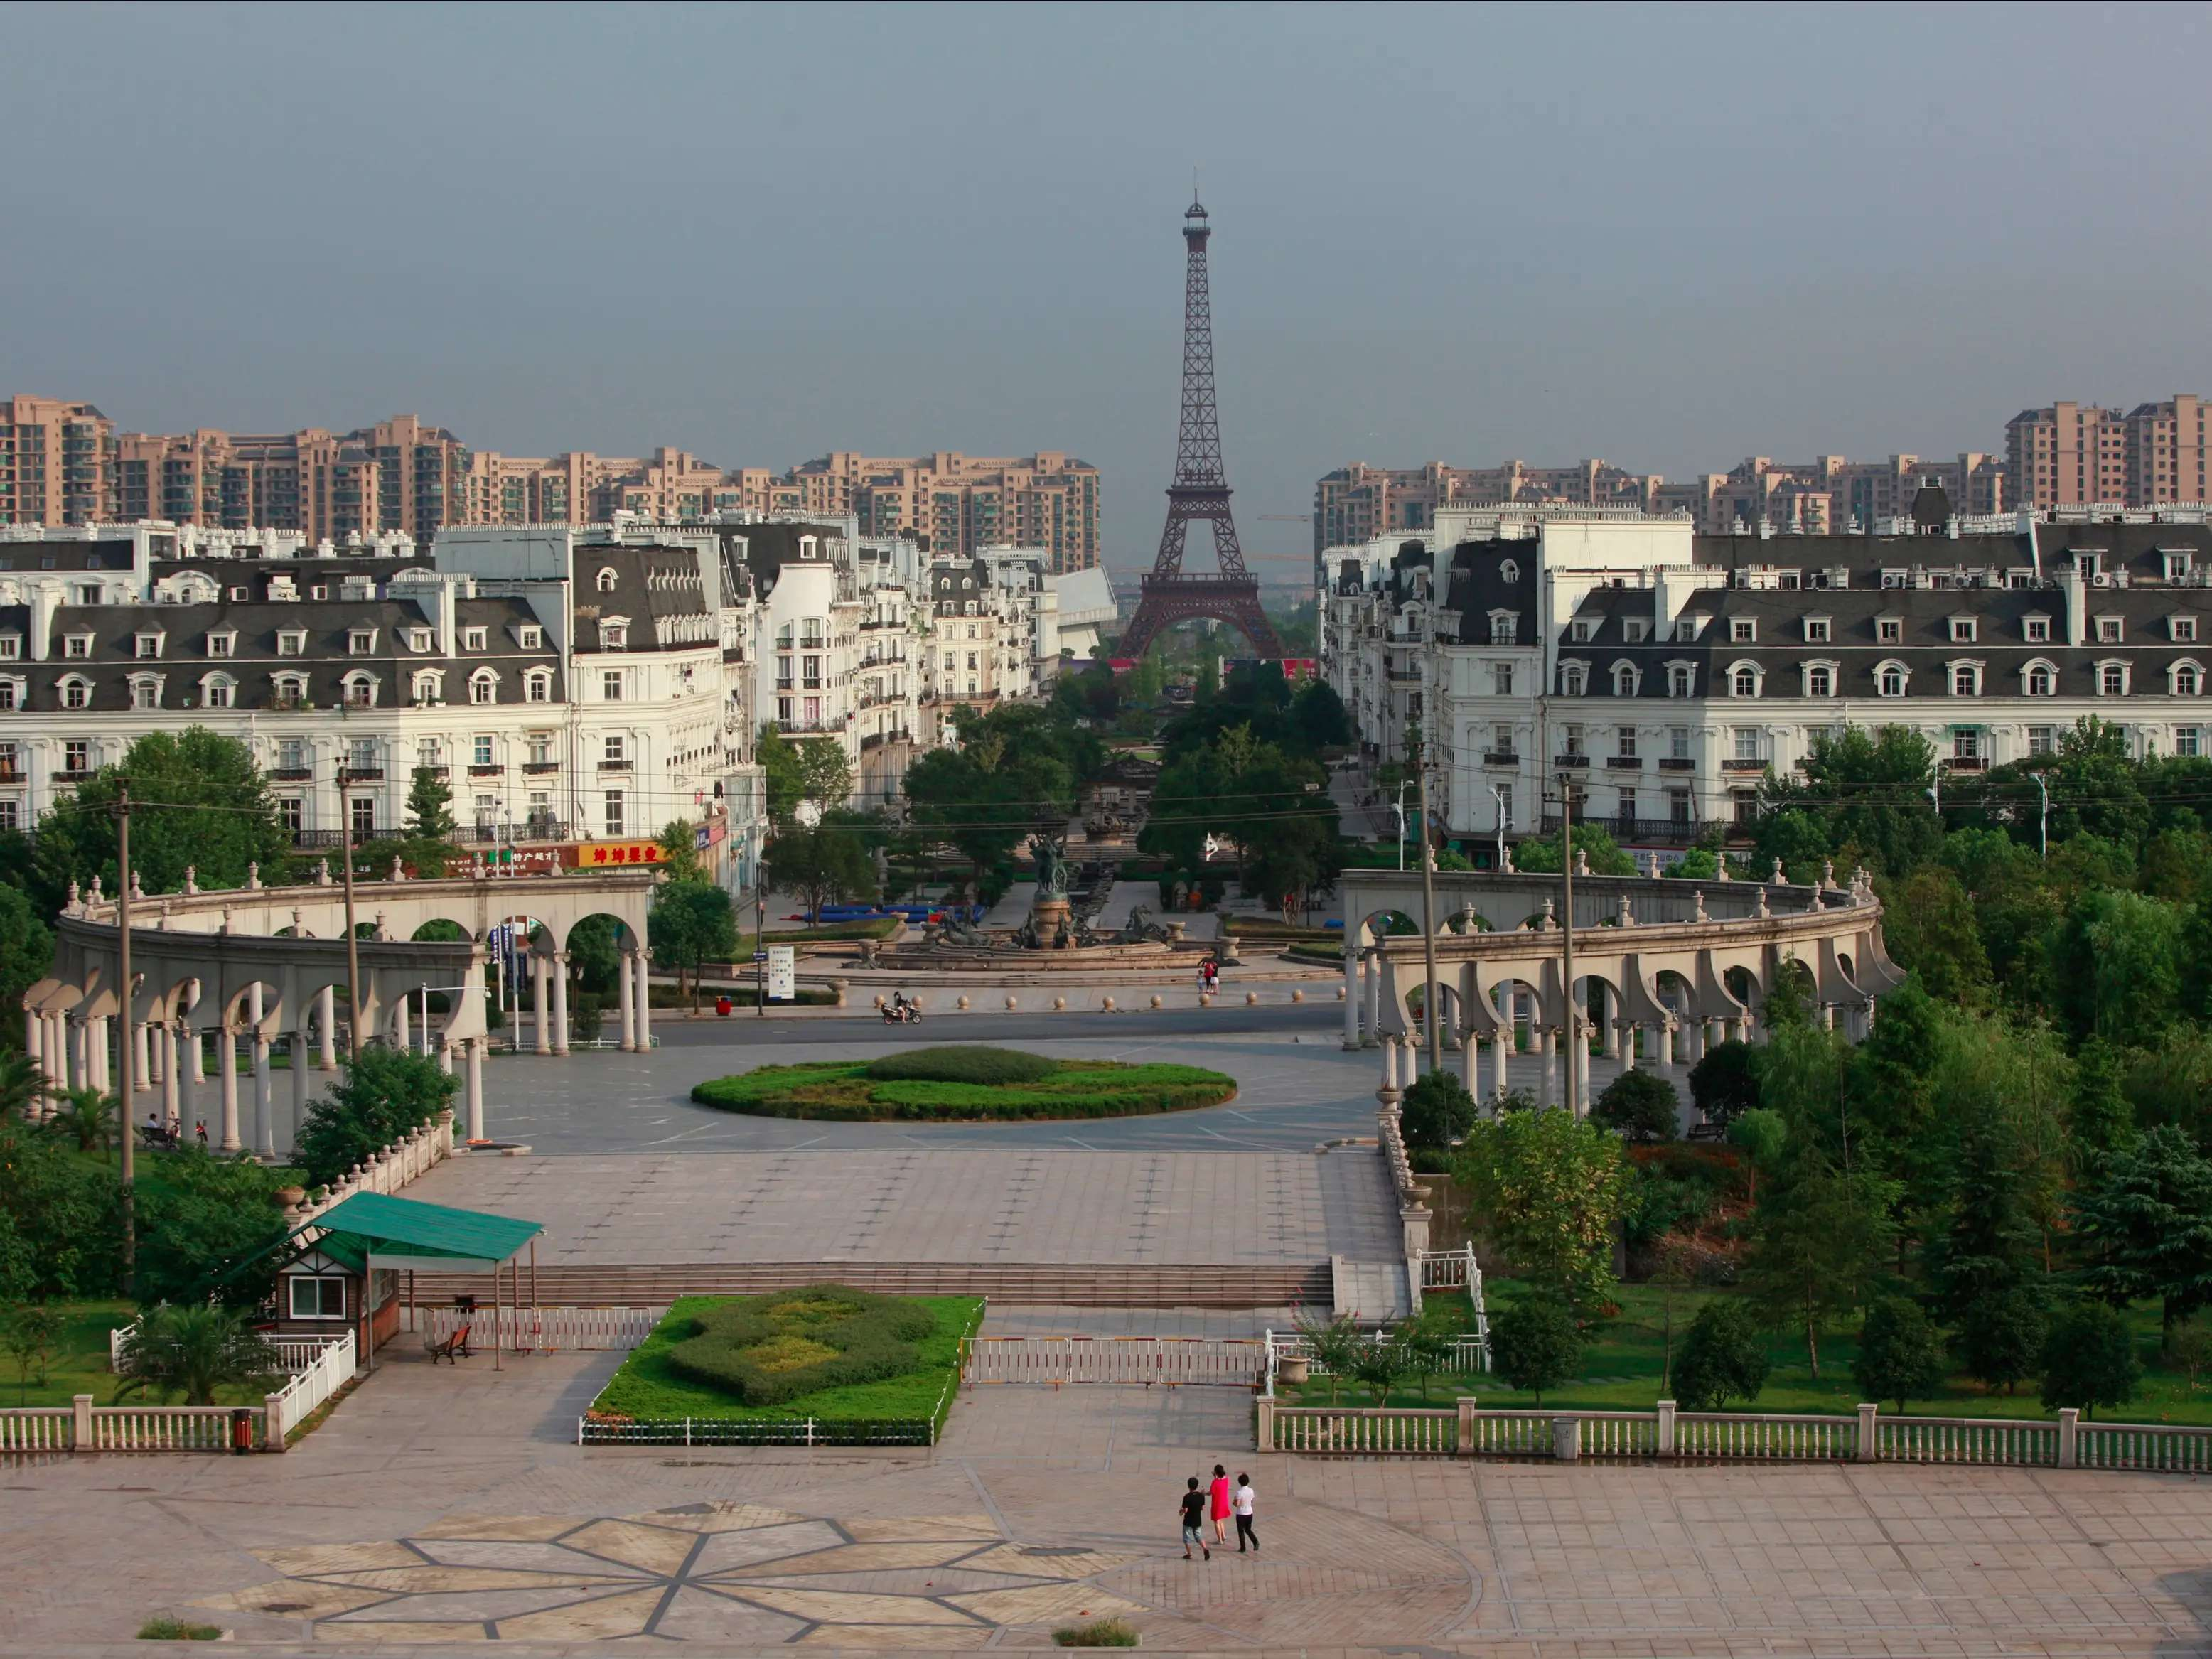 A few hours outside of Shanghai you'll come across Tianducheng, a wannabeParisthat features a 354-foot replica of the Eiffel tower. However, despite being surrounded by a residential area designed to accommodate 10,000 people, the copycat city is largely empty.